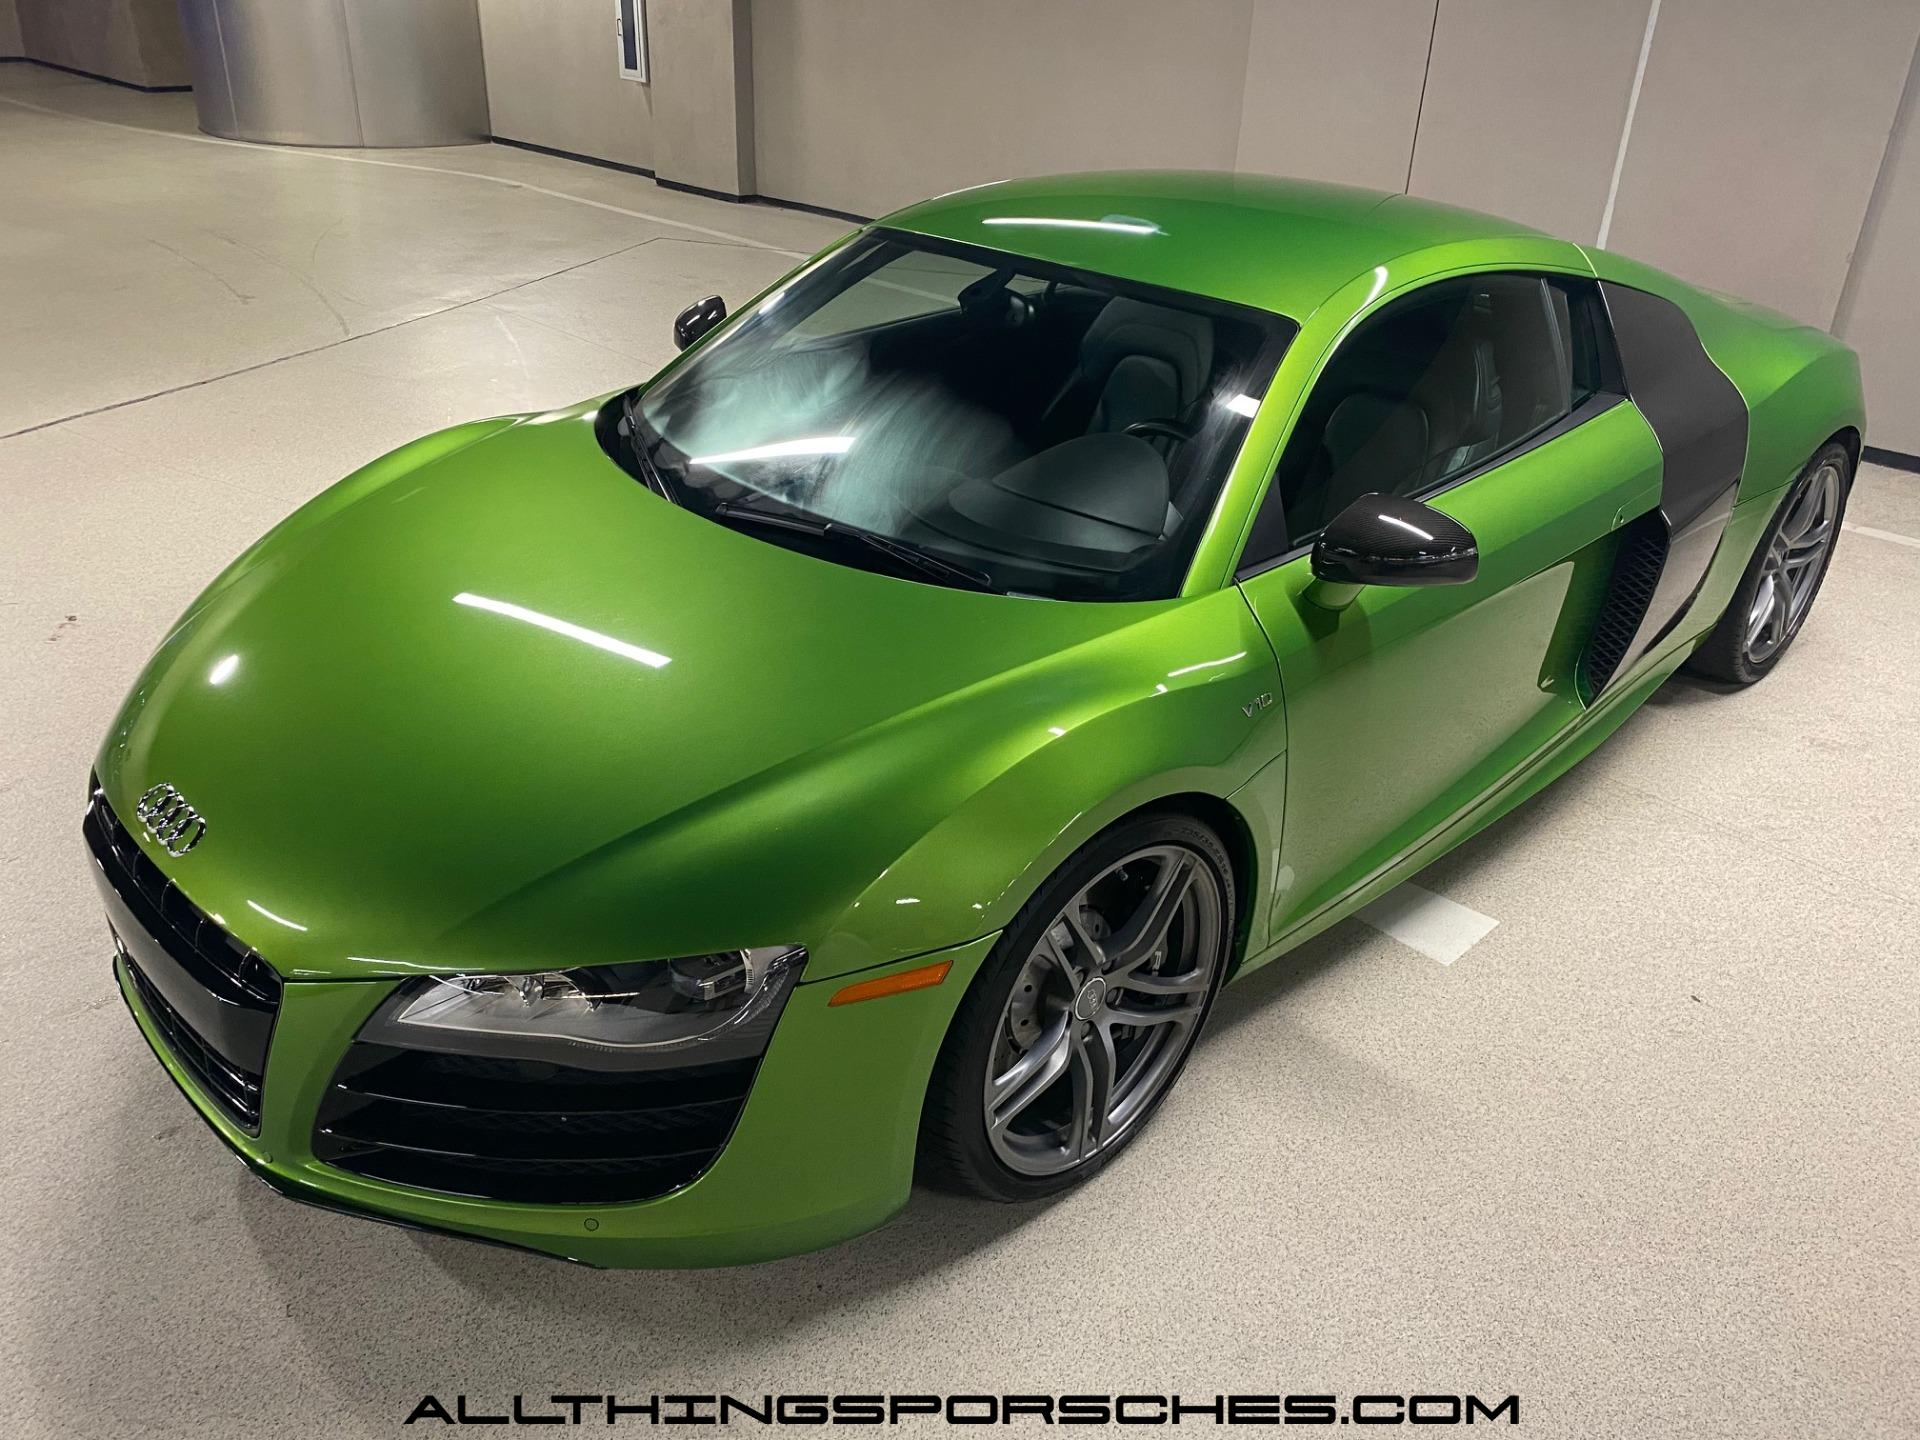 Used-2012-Audi-R8-V10-Coupe